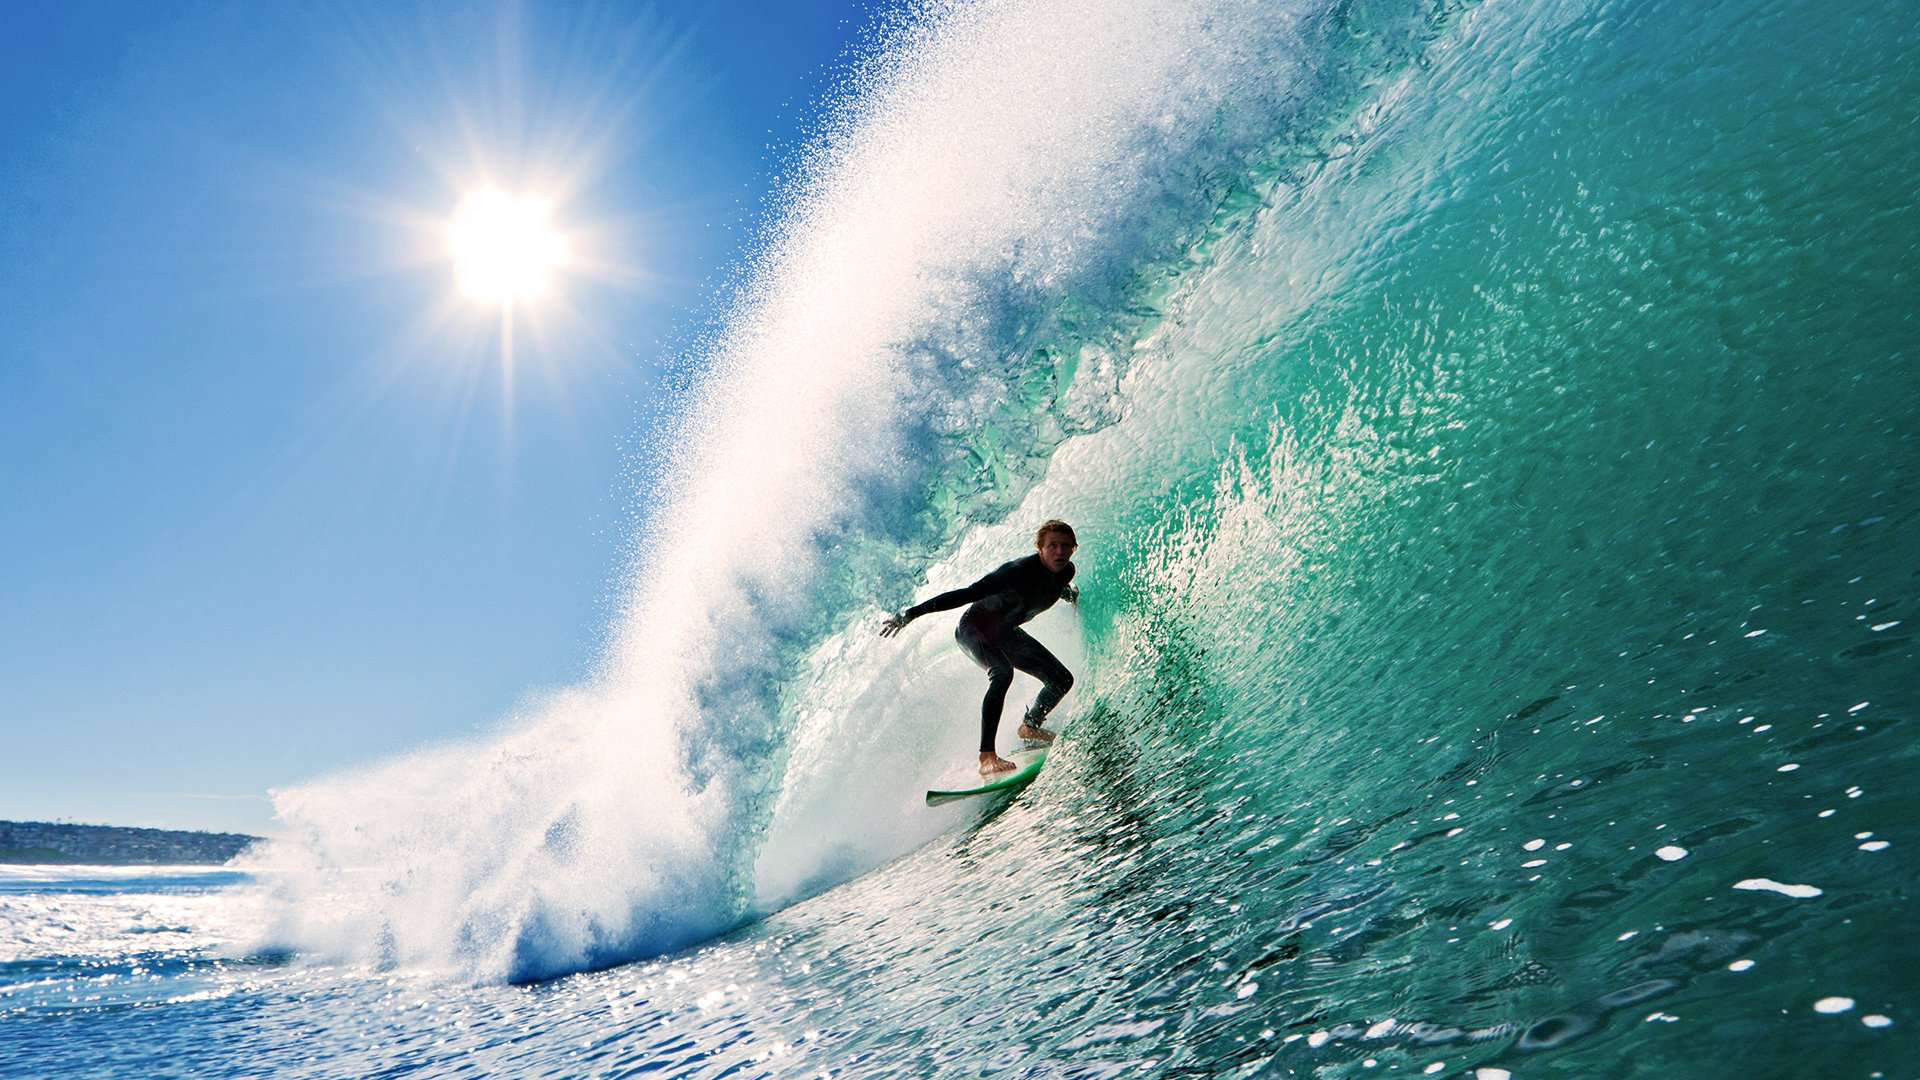 Surf HD Wallpaper